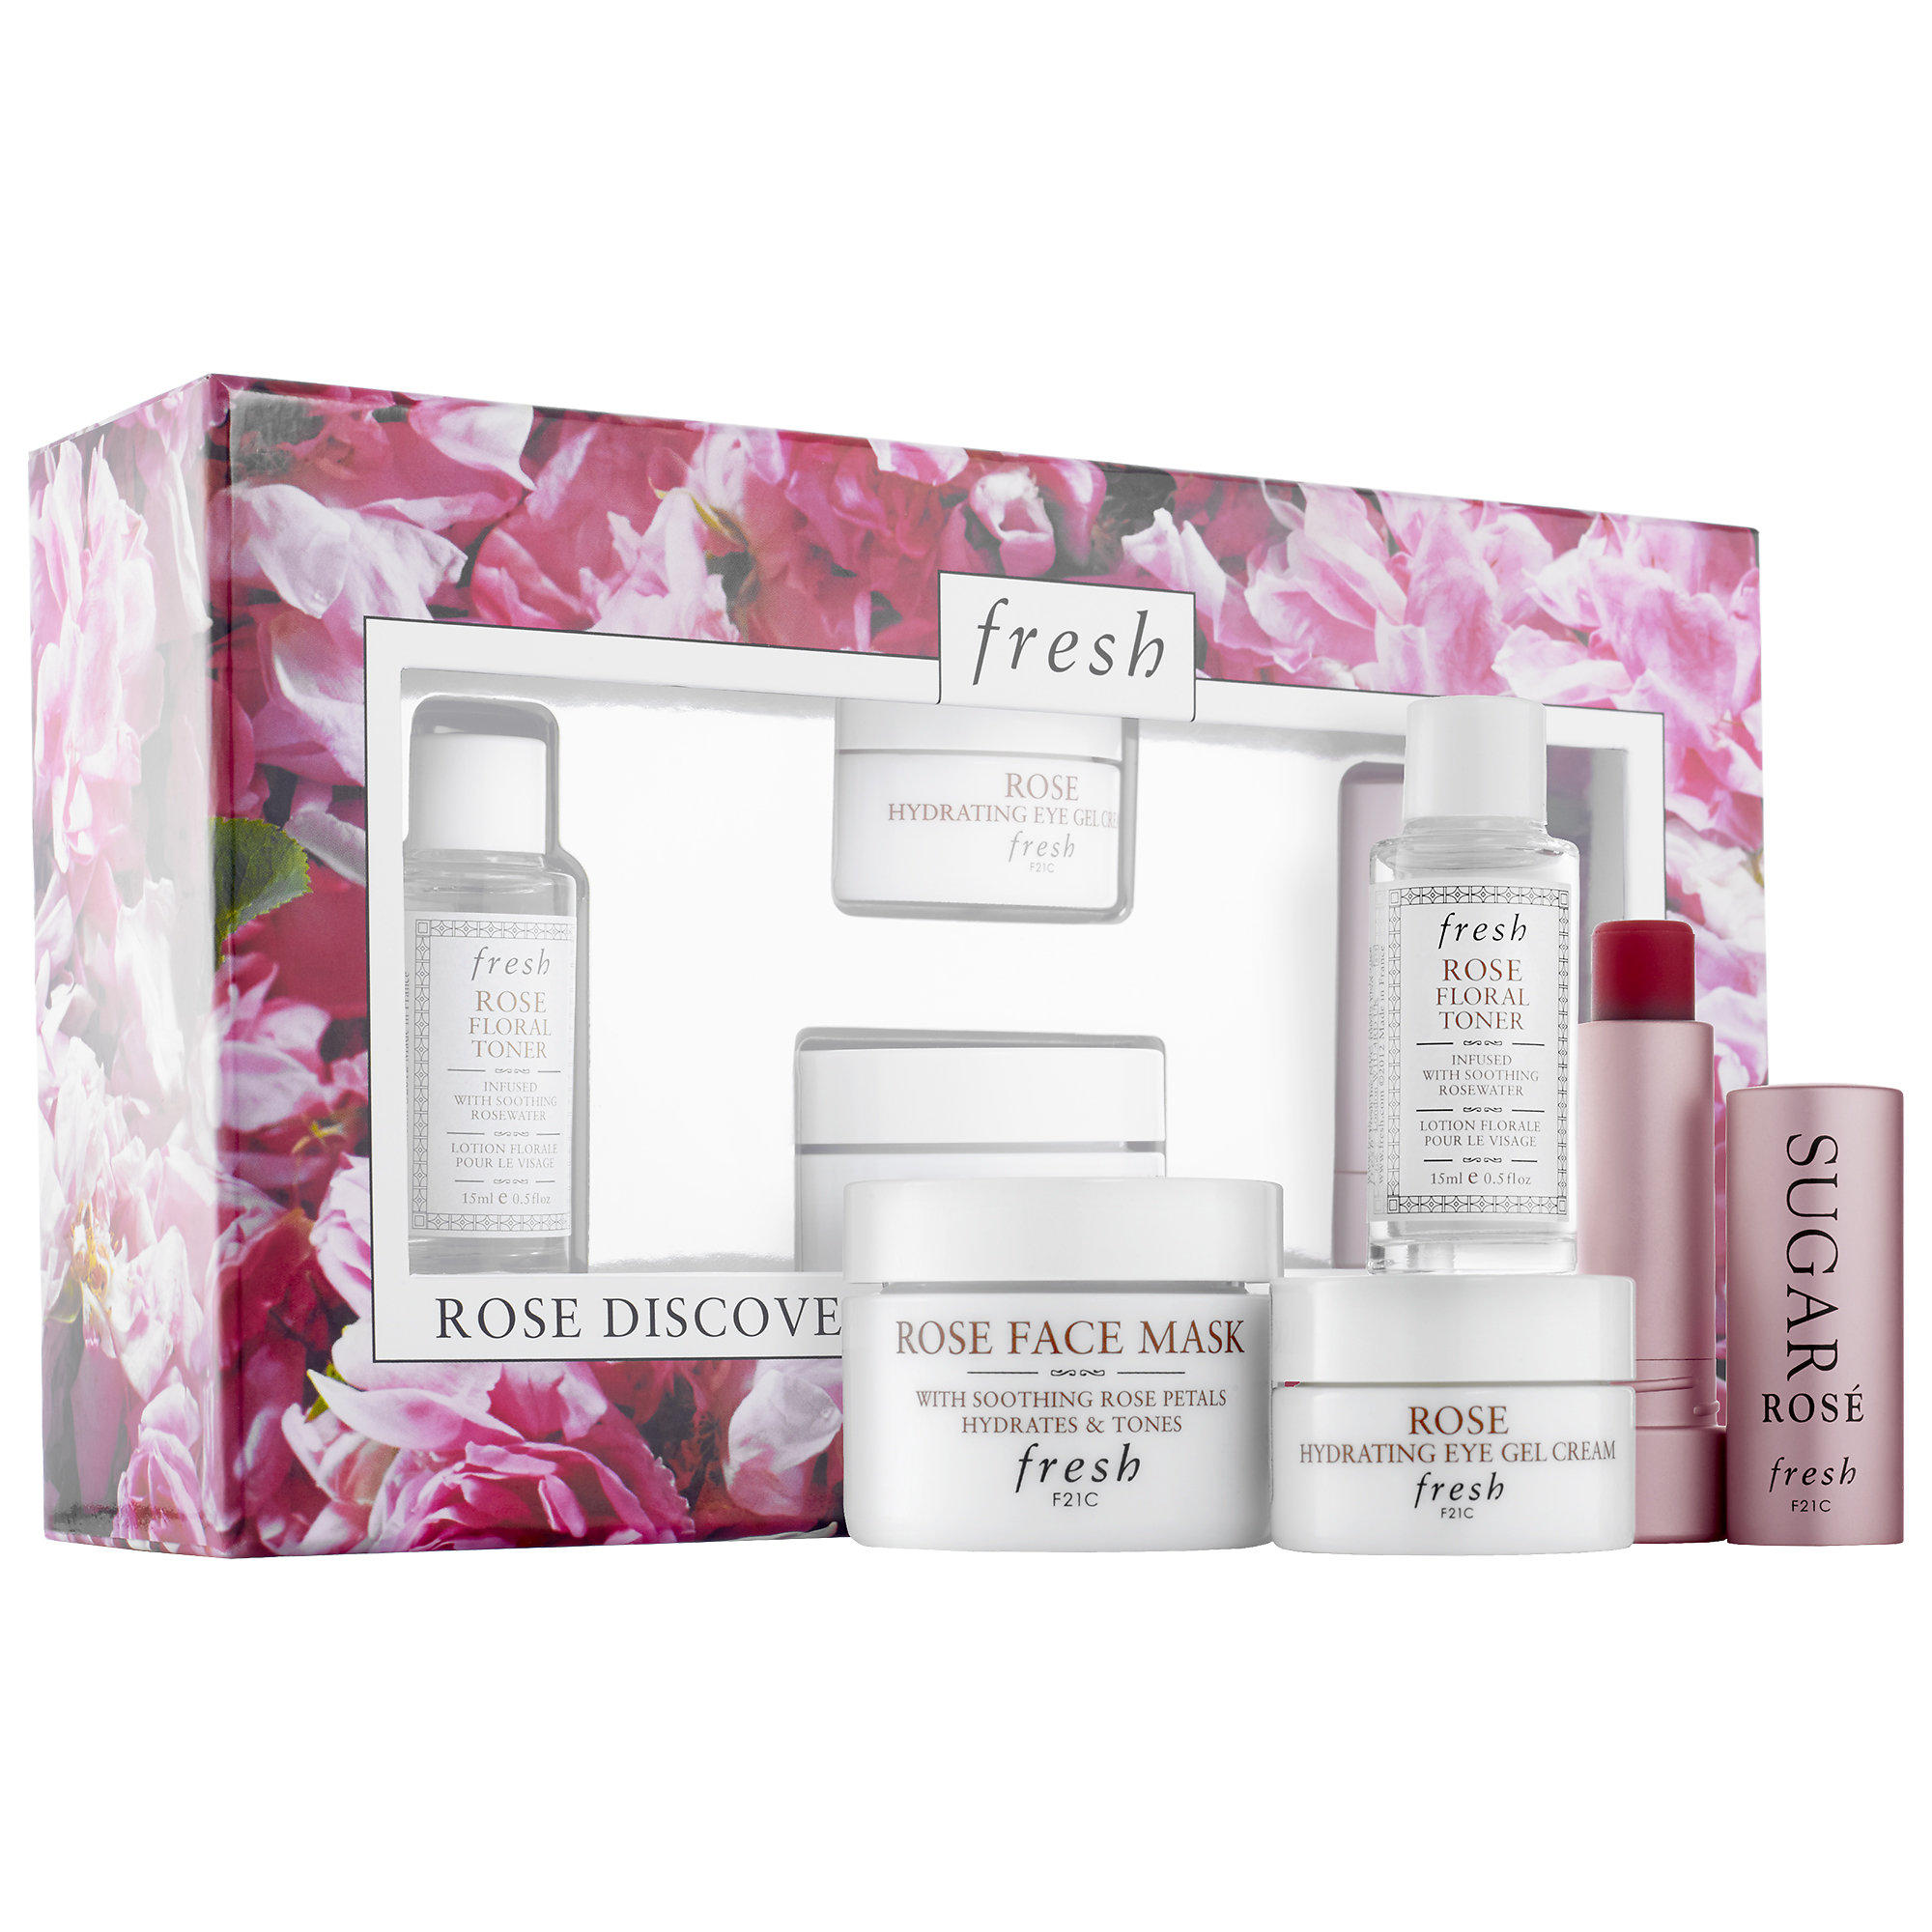 Fresh launched New Rose Discovery Kit